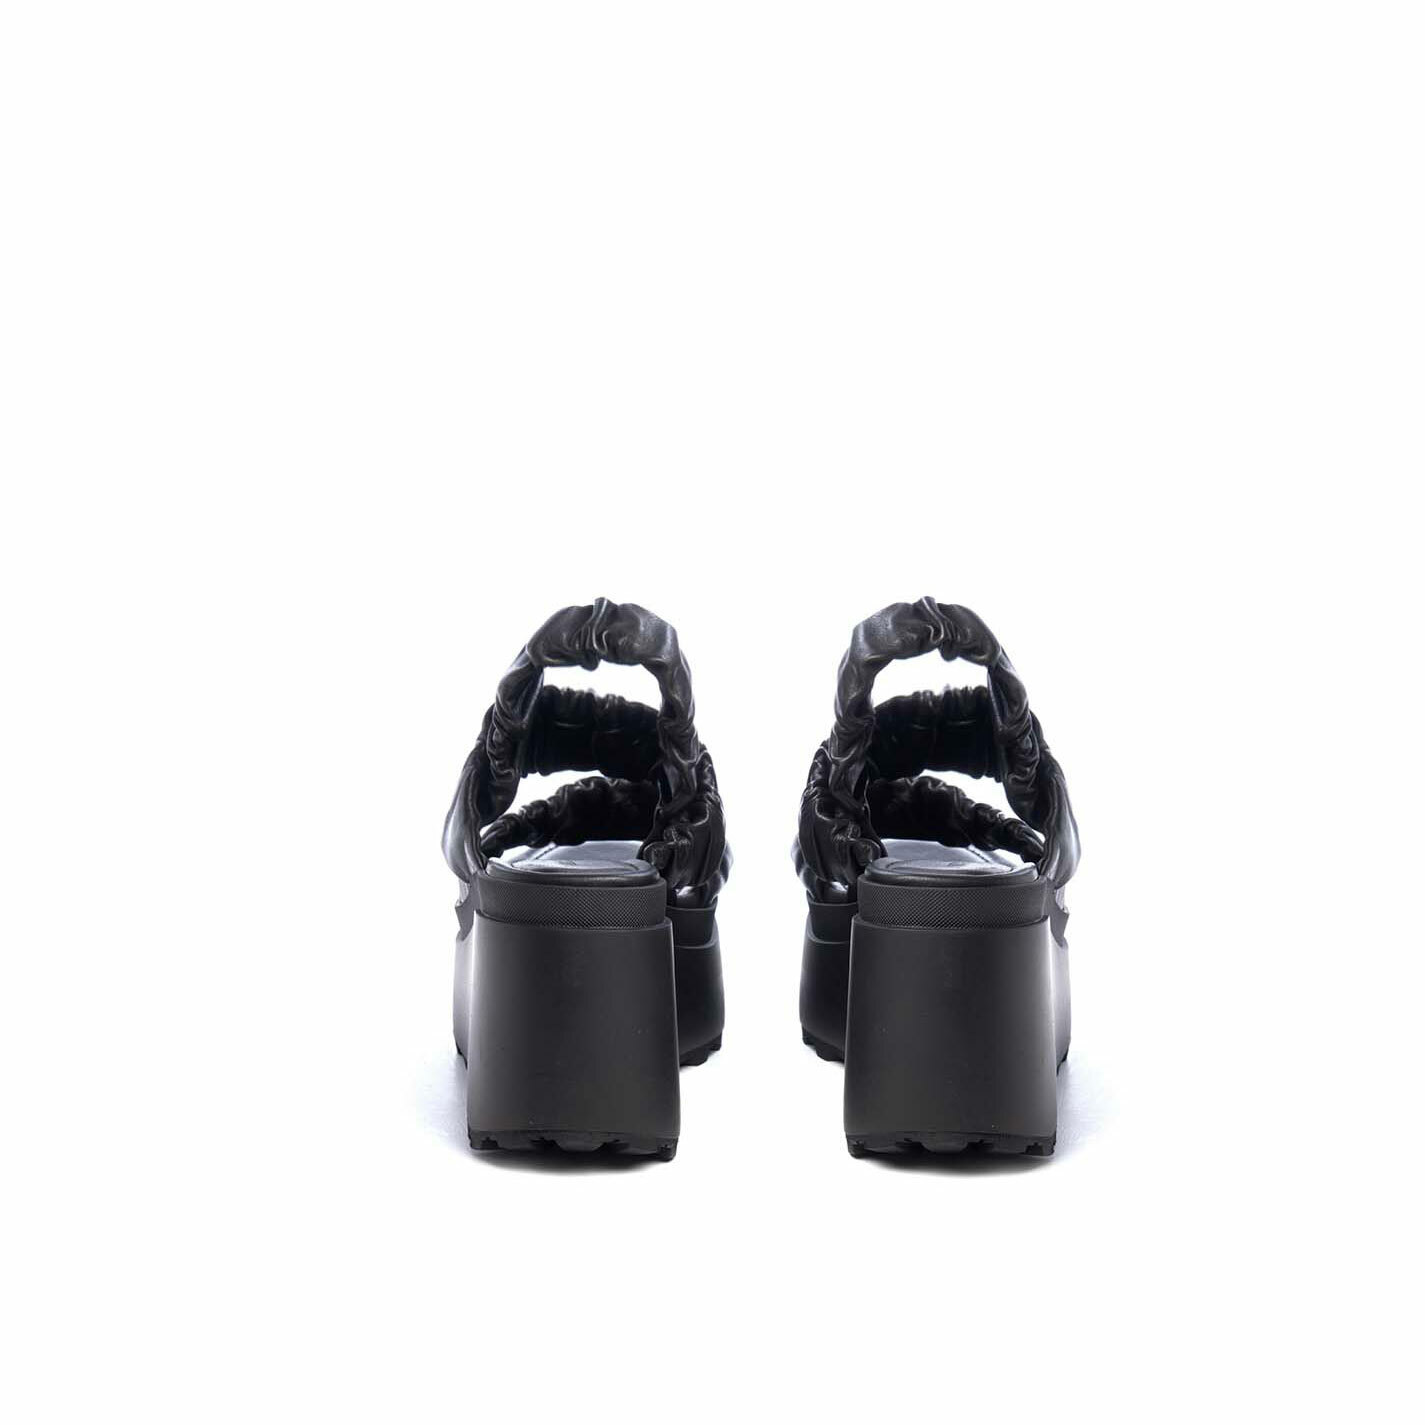 Wedge sandals with 3 black bands